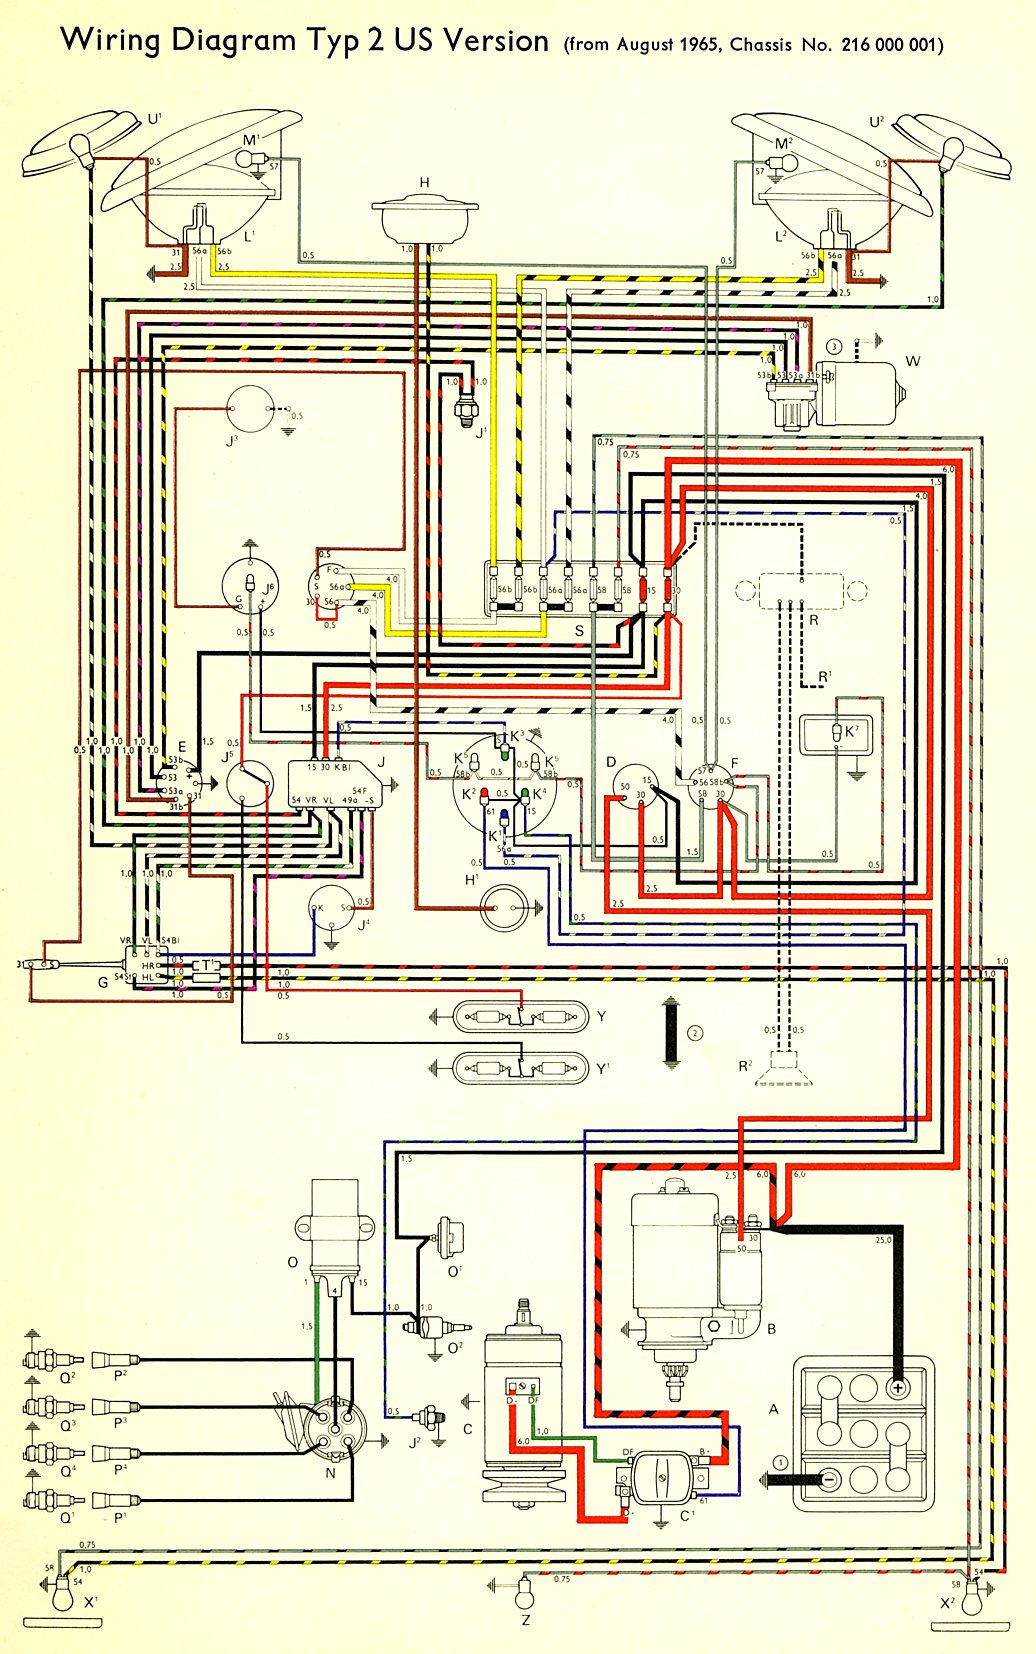 sas 4201 12 volt solenoid wiring diagram with 58 Ford F100 Wiring Diagrams on 12 Volt Reel Wiring Diagram moreover 12 Volt Air  pressor Wiring Diagram as well 4 Post Winch Wiring Diagram further Ezgo Pds Solenoid Wiring Diagram Solve Problems Cart 36 Volt likewise Solenoid 1971 F250 Ford F100 Jumping Battery Terminal Starter Wiring.